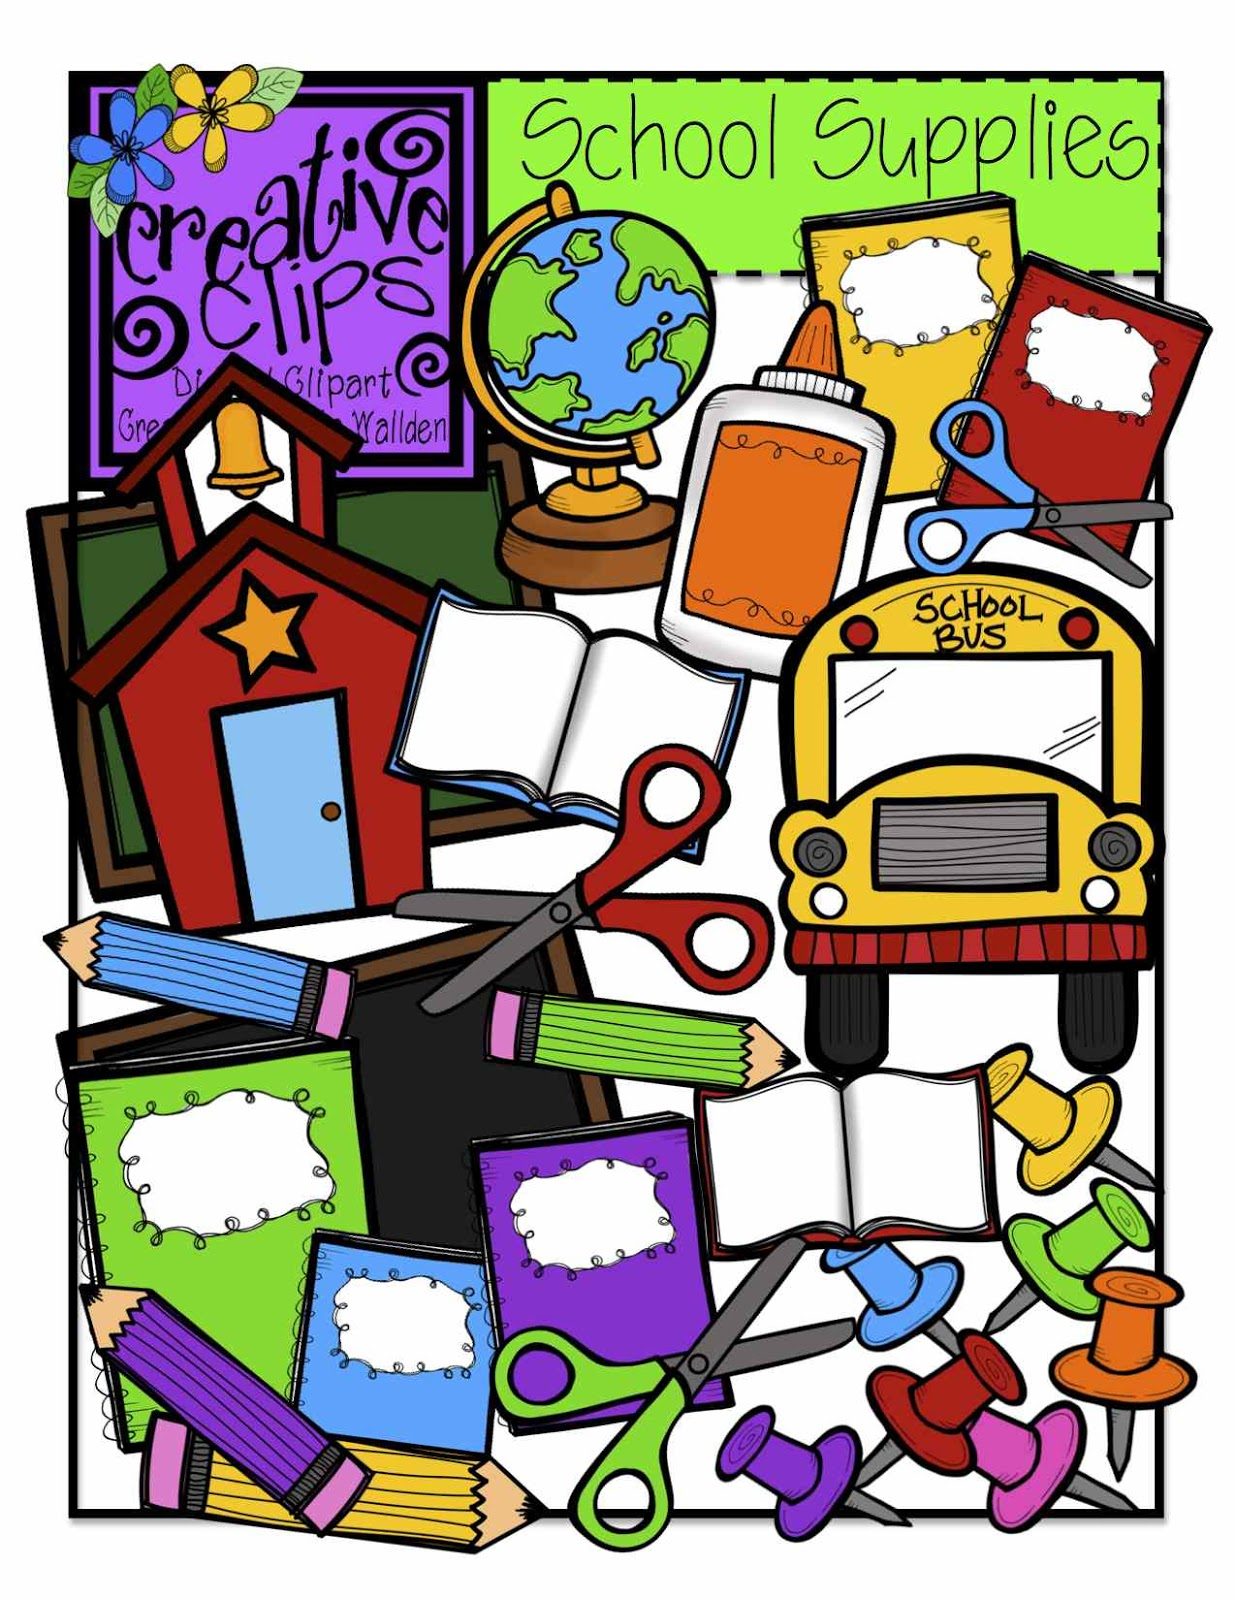 1236x1600 School Supplies School Supply Giveaway Clipart Clipartfest